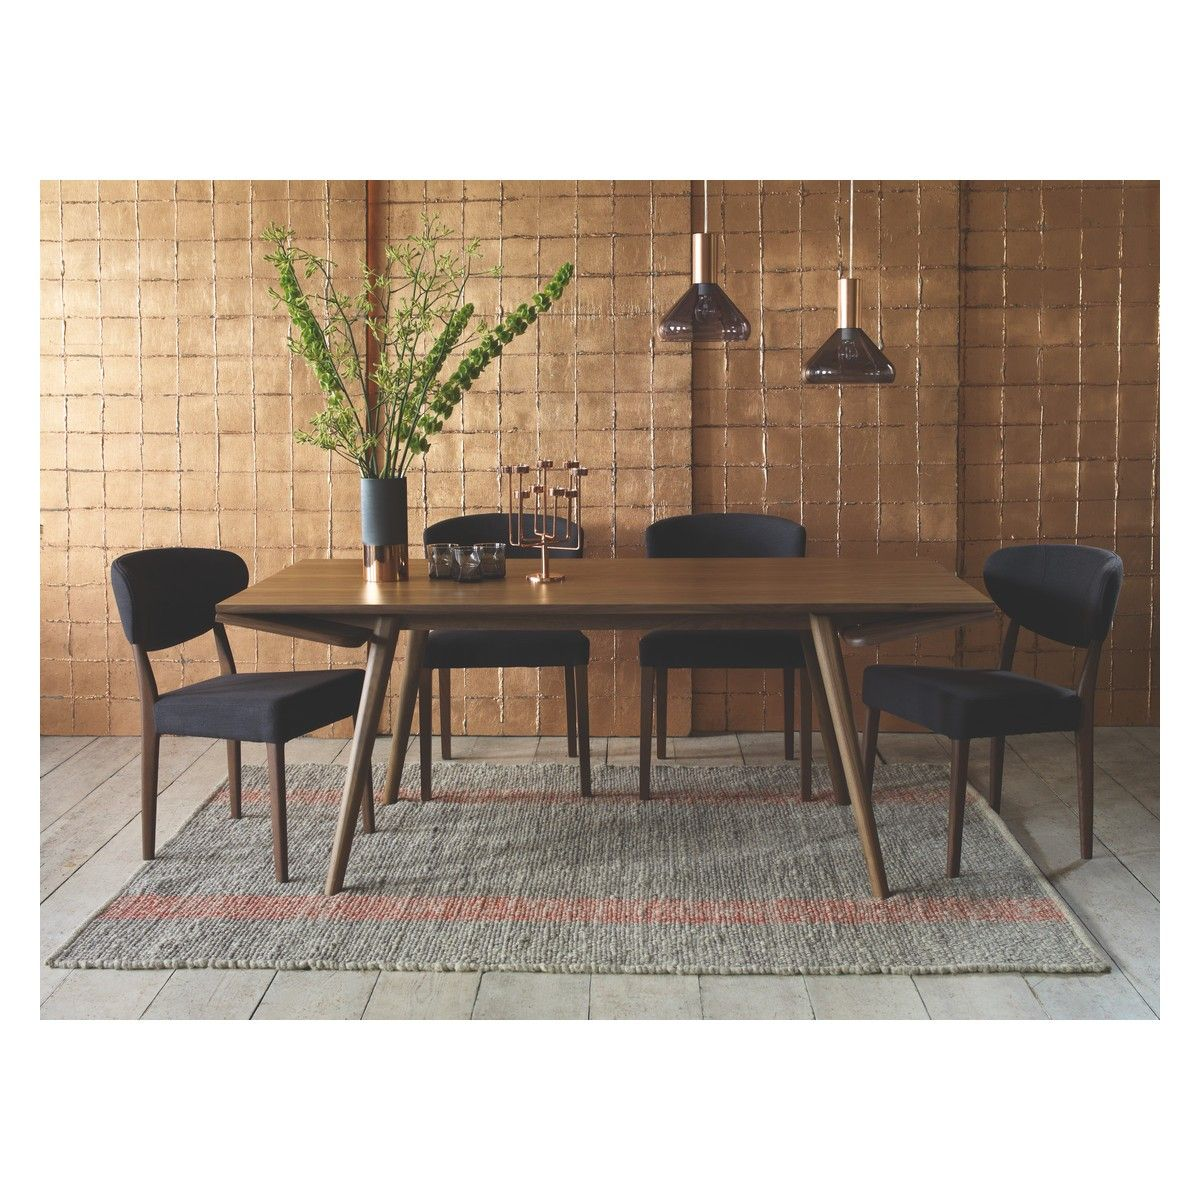 grey upholstered dining chairs uk pedro friedeberg hand chair barnes buy now at habitat